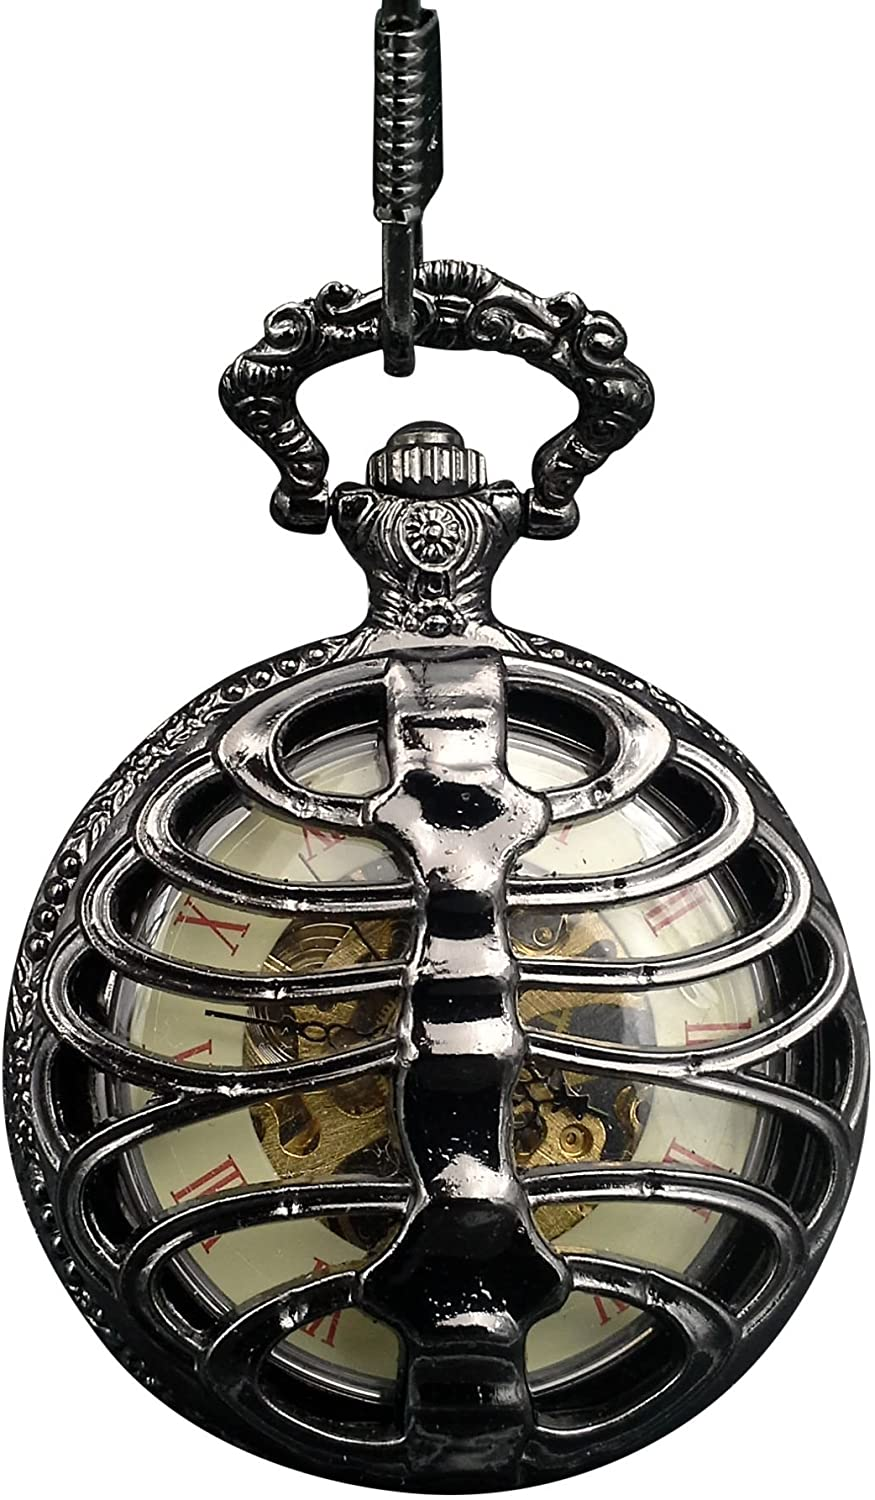 ShoppeWatch Pocket Watch Wind Up Mechanical Movement Steampunk Skeleton Dial PW-185